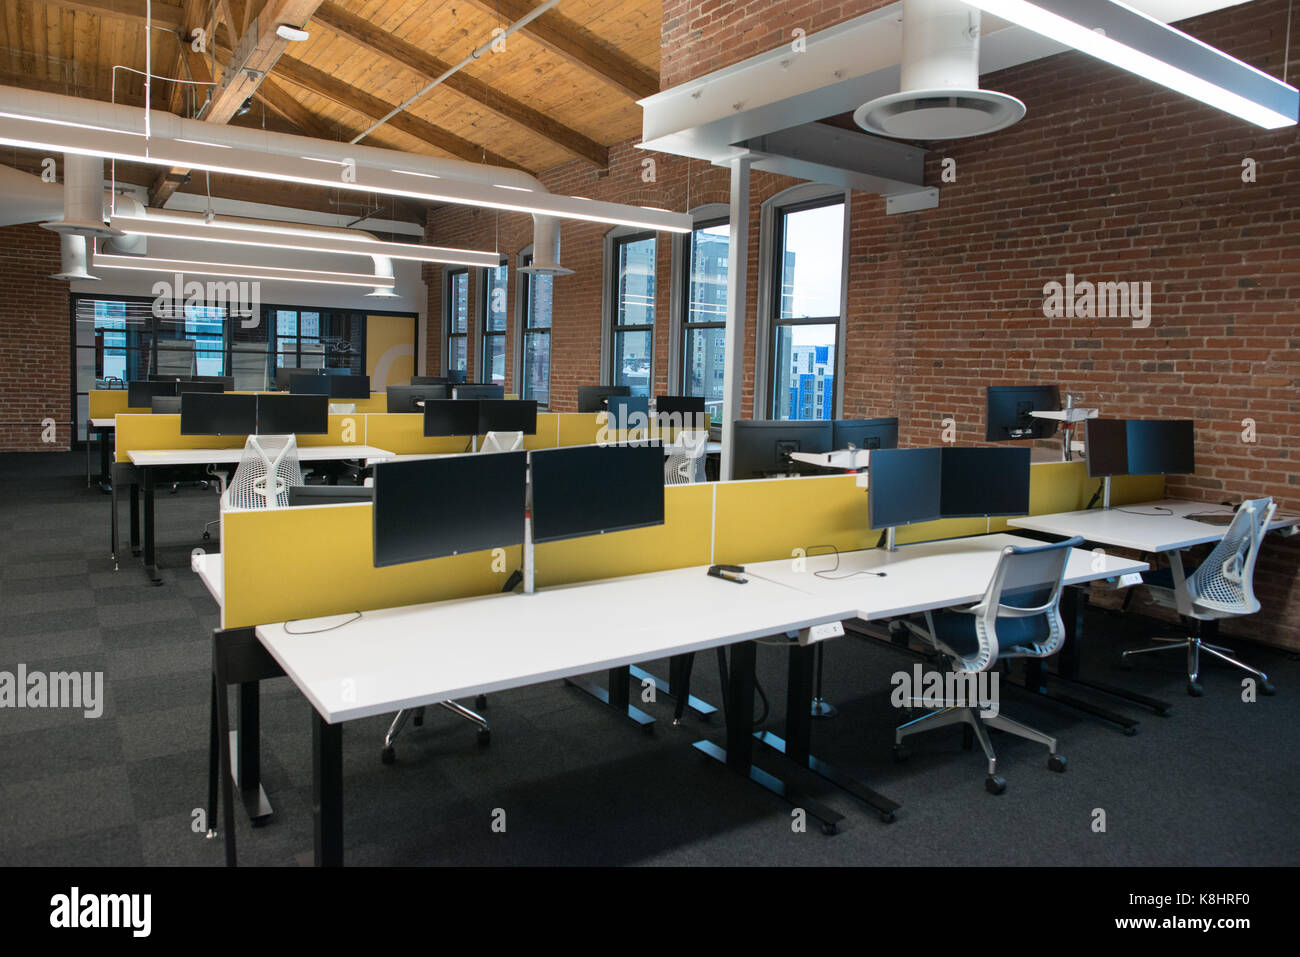 loft office space. Trendy Modern Open Concept Loft Office Space With Big Windows, Natural Light And A Layout To Encourage Collaboration, Creativity Innovation